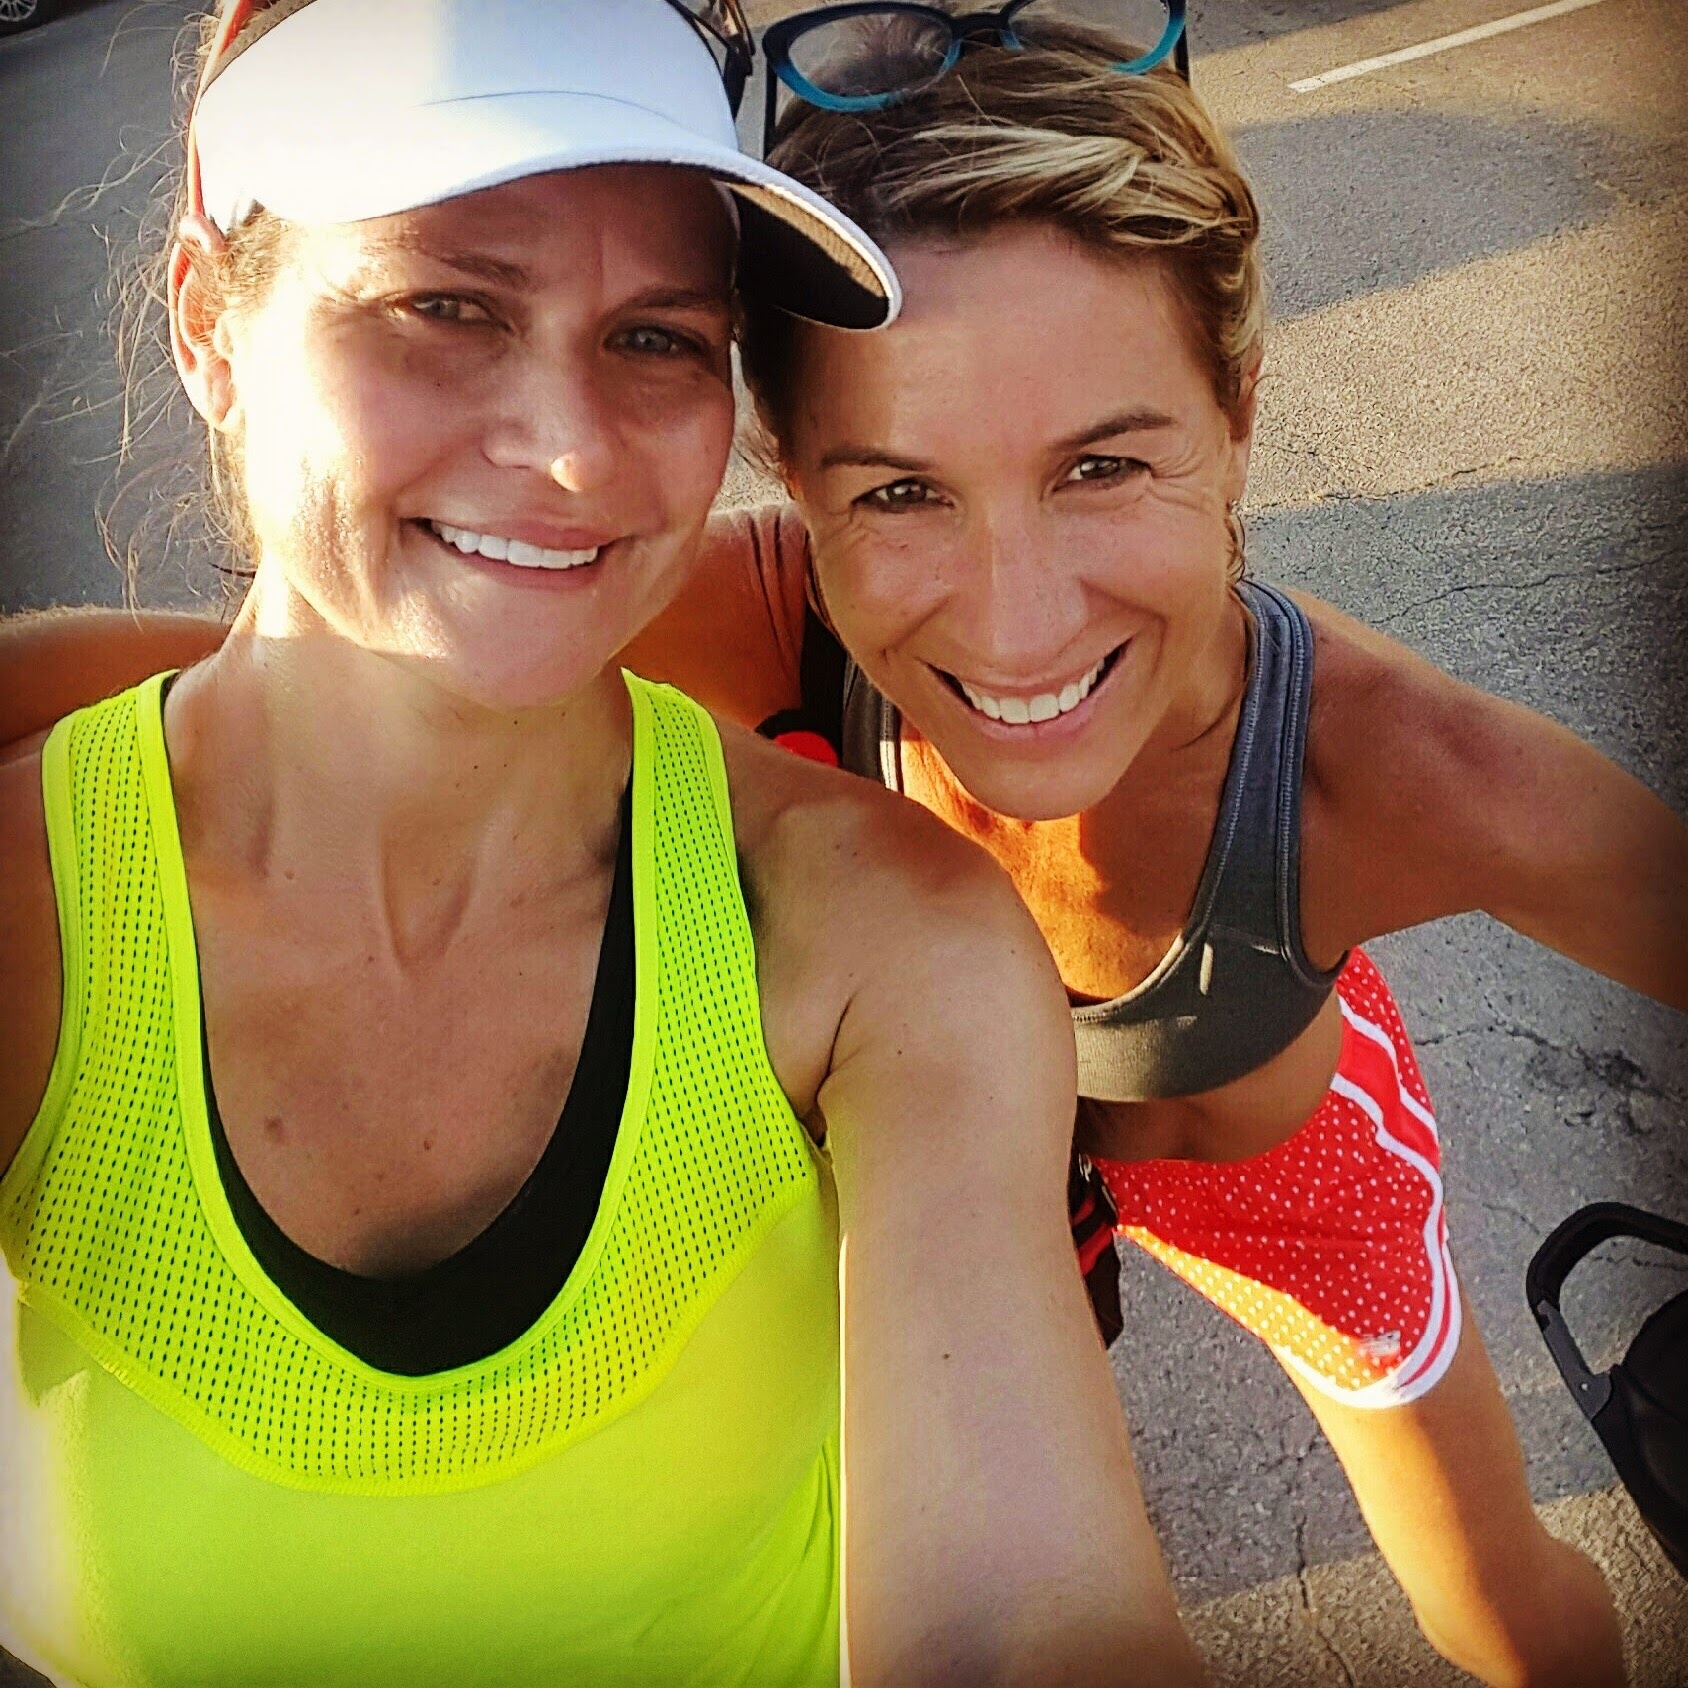 Amy Stucky (left) is a supportive force in the local running community. She has run several marathons including NYC and Boston. She recently obtained her RRKC coaching certification and assists Head Coach Amy with runs.